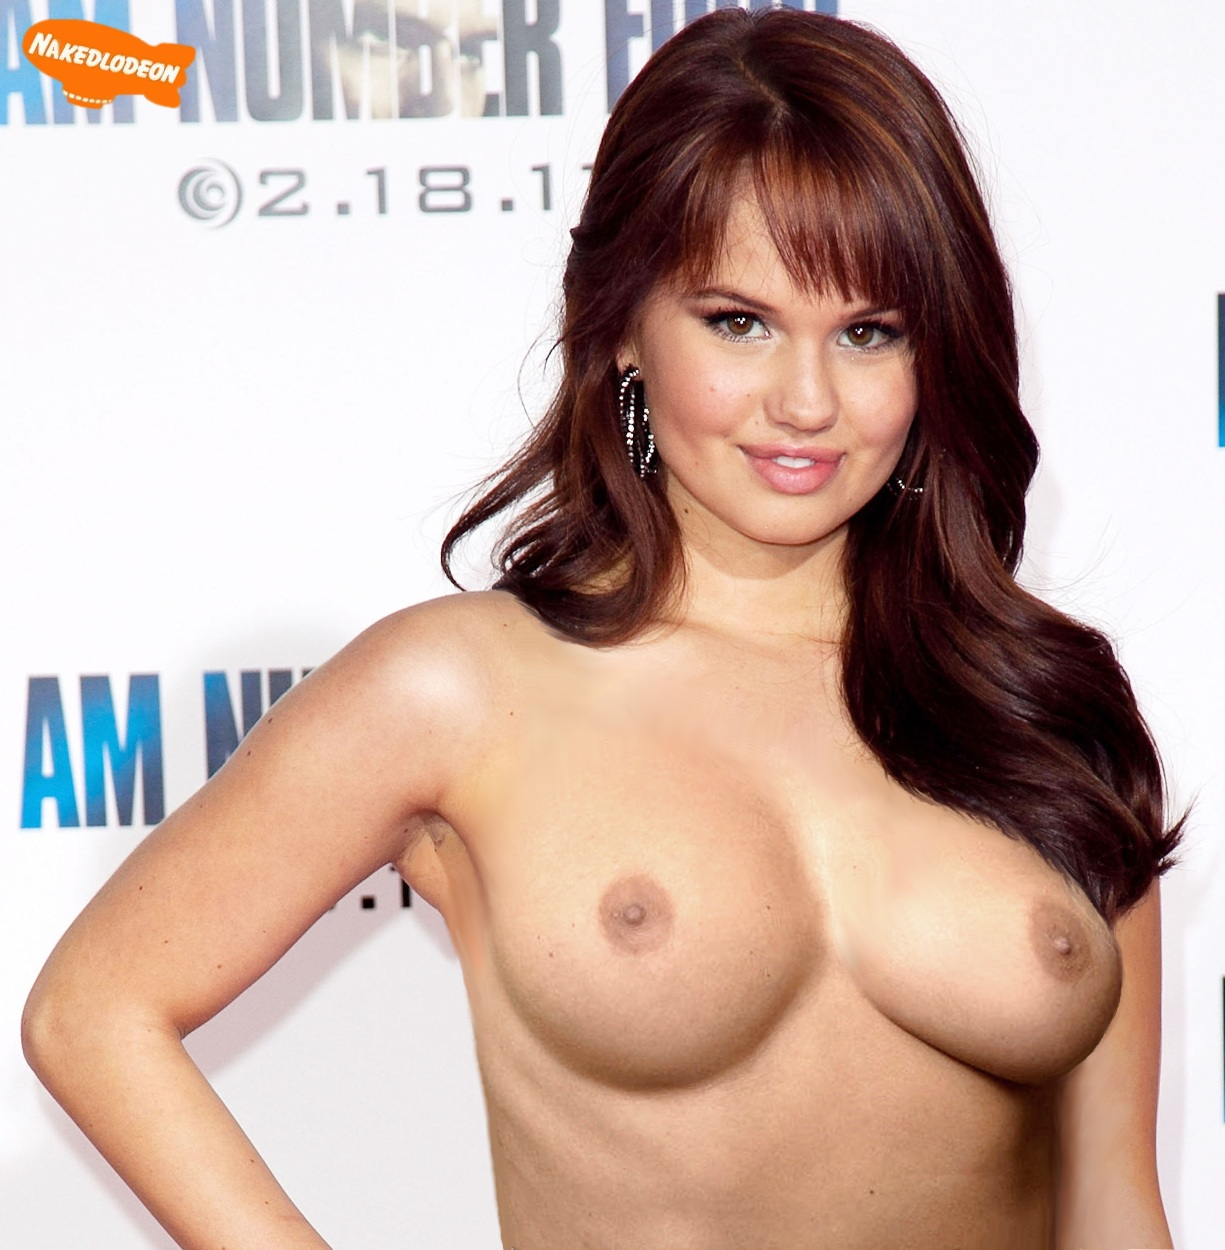 debby ryan in nude